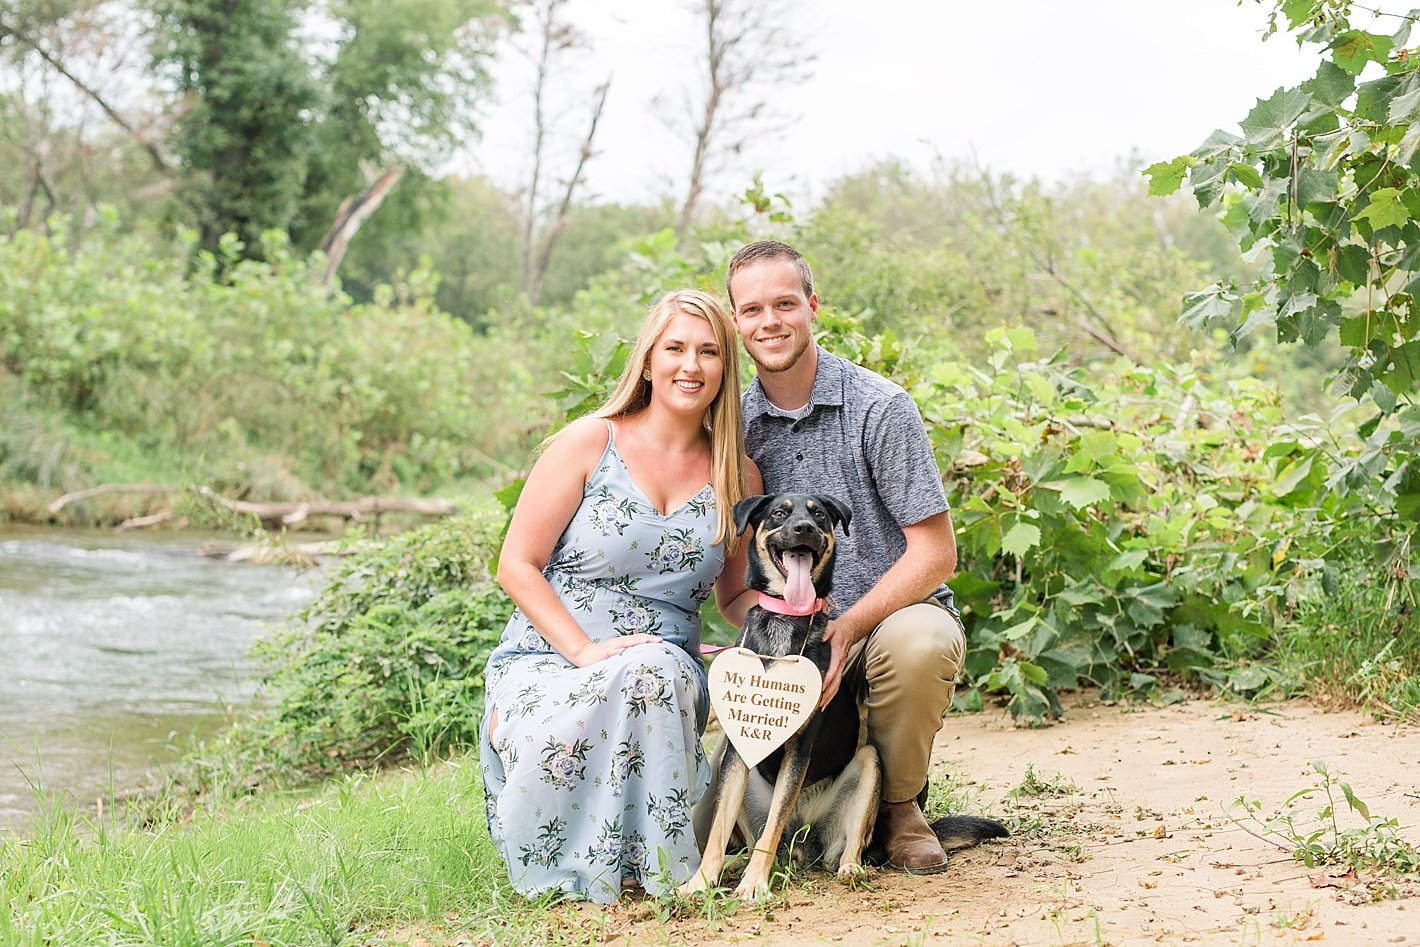 NCR trail engagement photography, Baltimore engagement photographer, coordinating blue outfits for engagement photos, my humans are getting married sign for dog